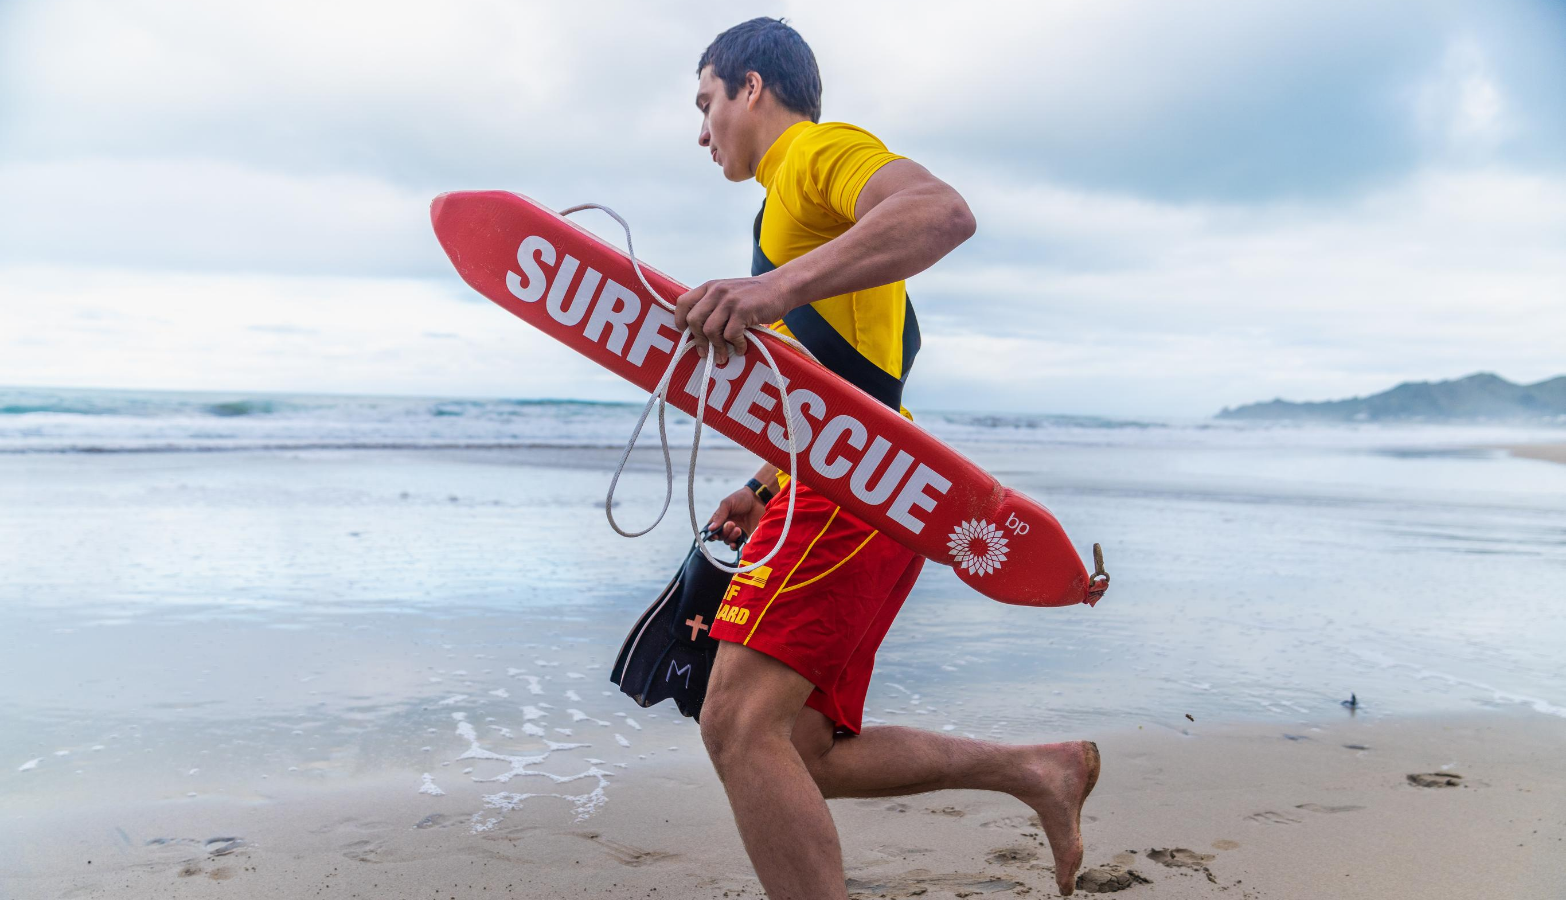 Mail Surf Lifeguard Rescue Tube Close up